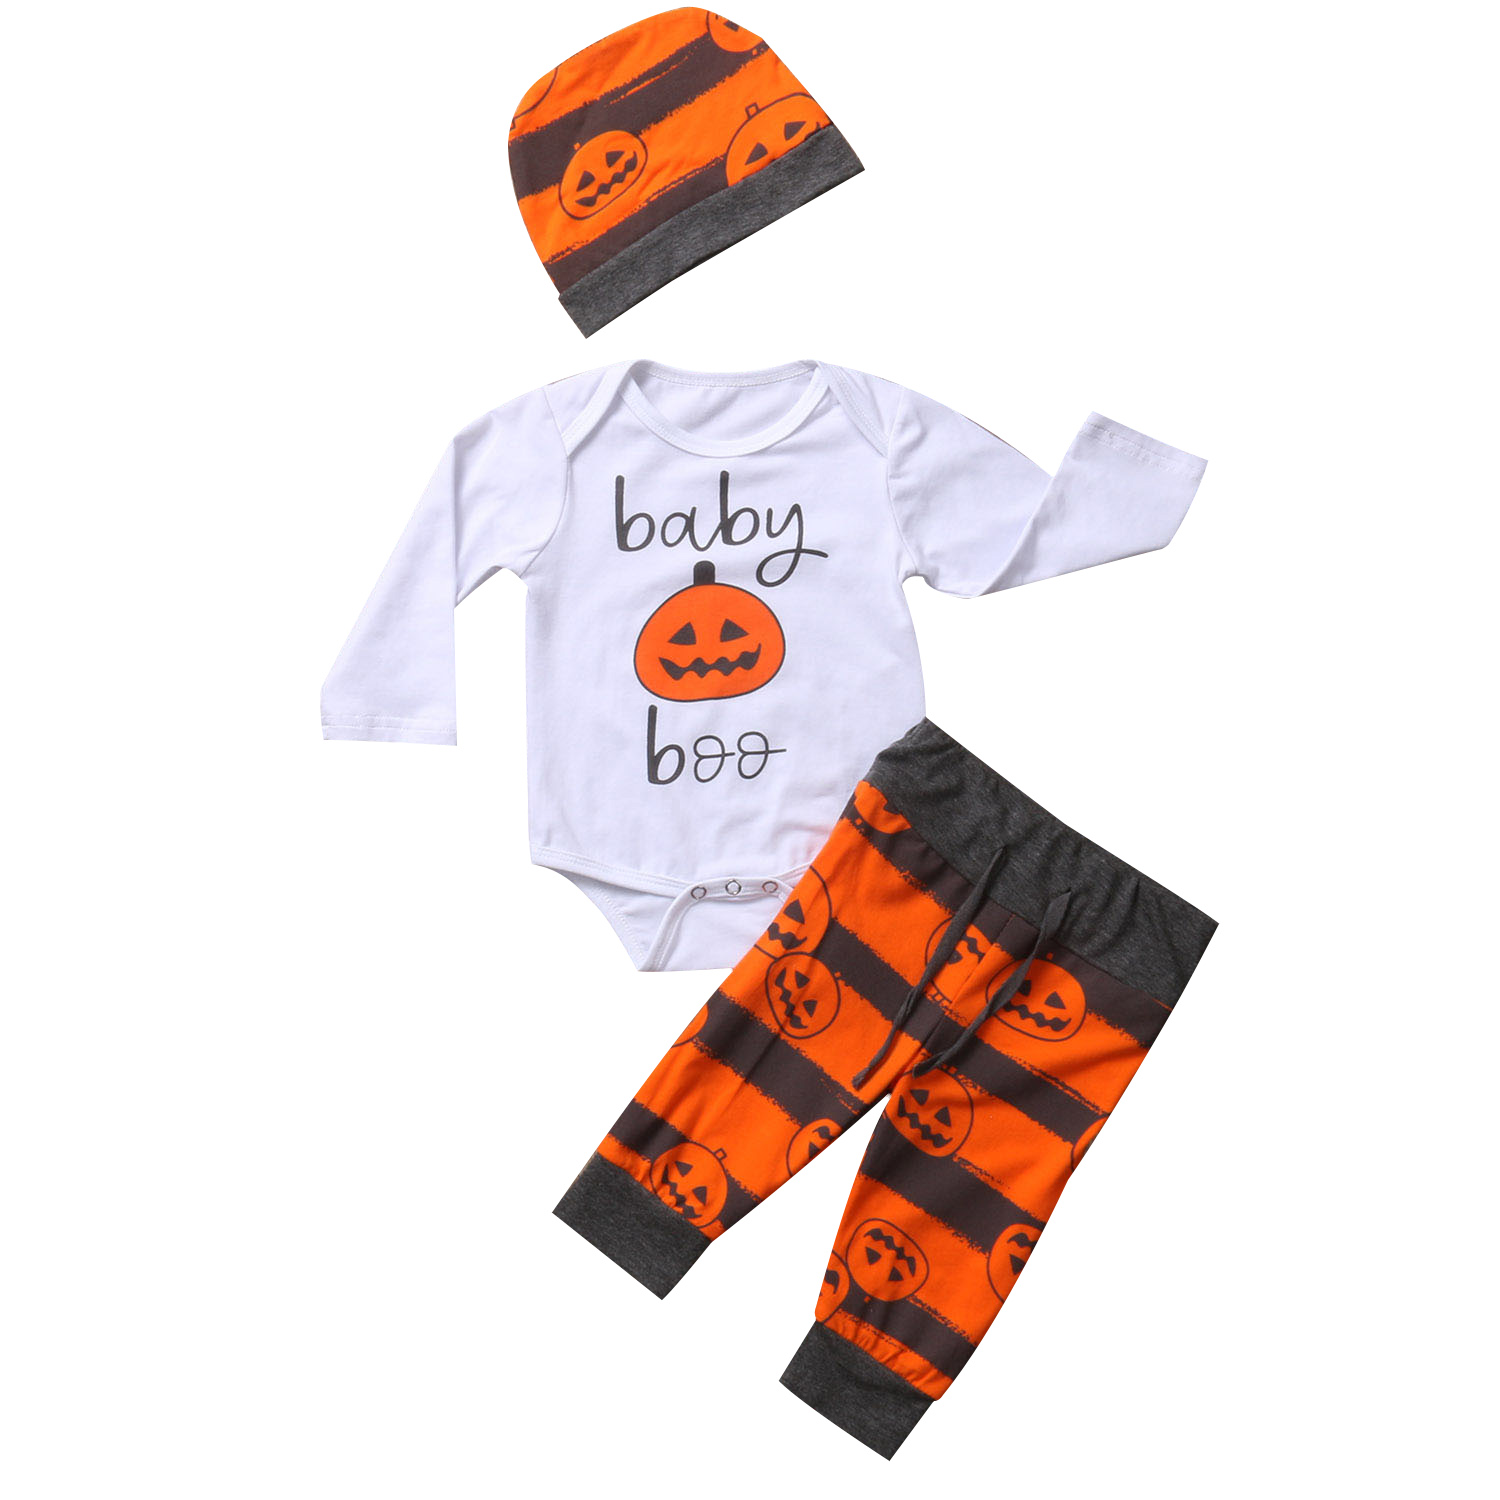 3PCS High Quality Halloween Set Newborn Baby Girl Boy Clothes Long Sleeve Tops Romper +Long Pants Hat Outfits Baby Clothing newborn infant girl boy long sleeve romper floral deer pants baby coming home outfits set clothes